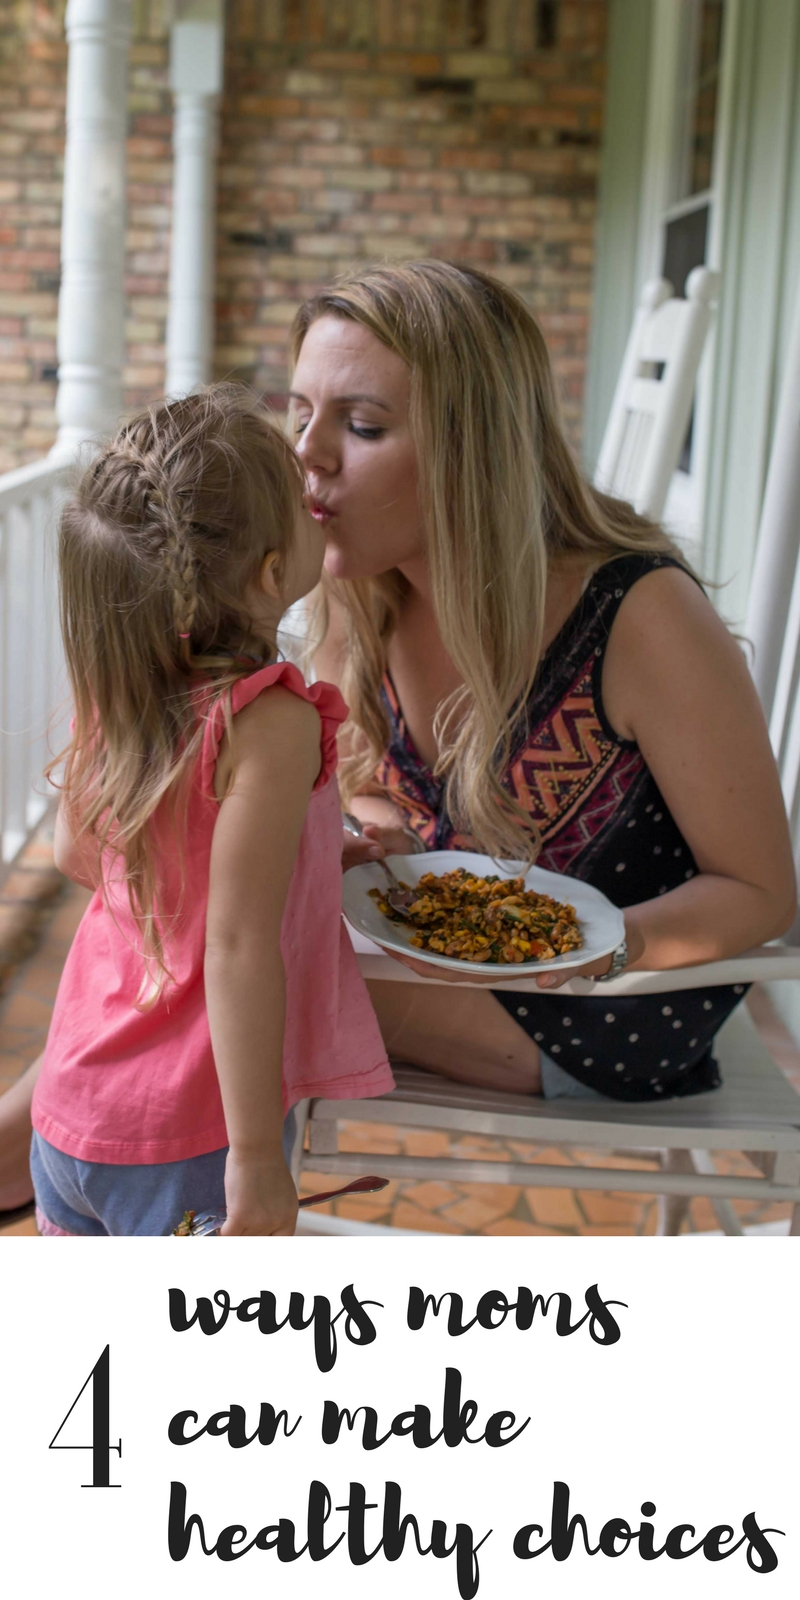 4 Ways Moms Can Make Healthy Choices by lifestyle mommy blogger Casual Claire